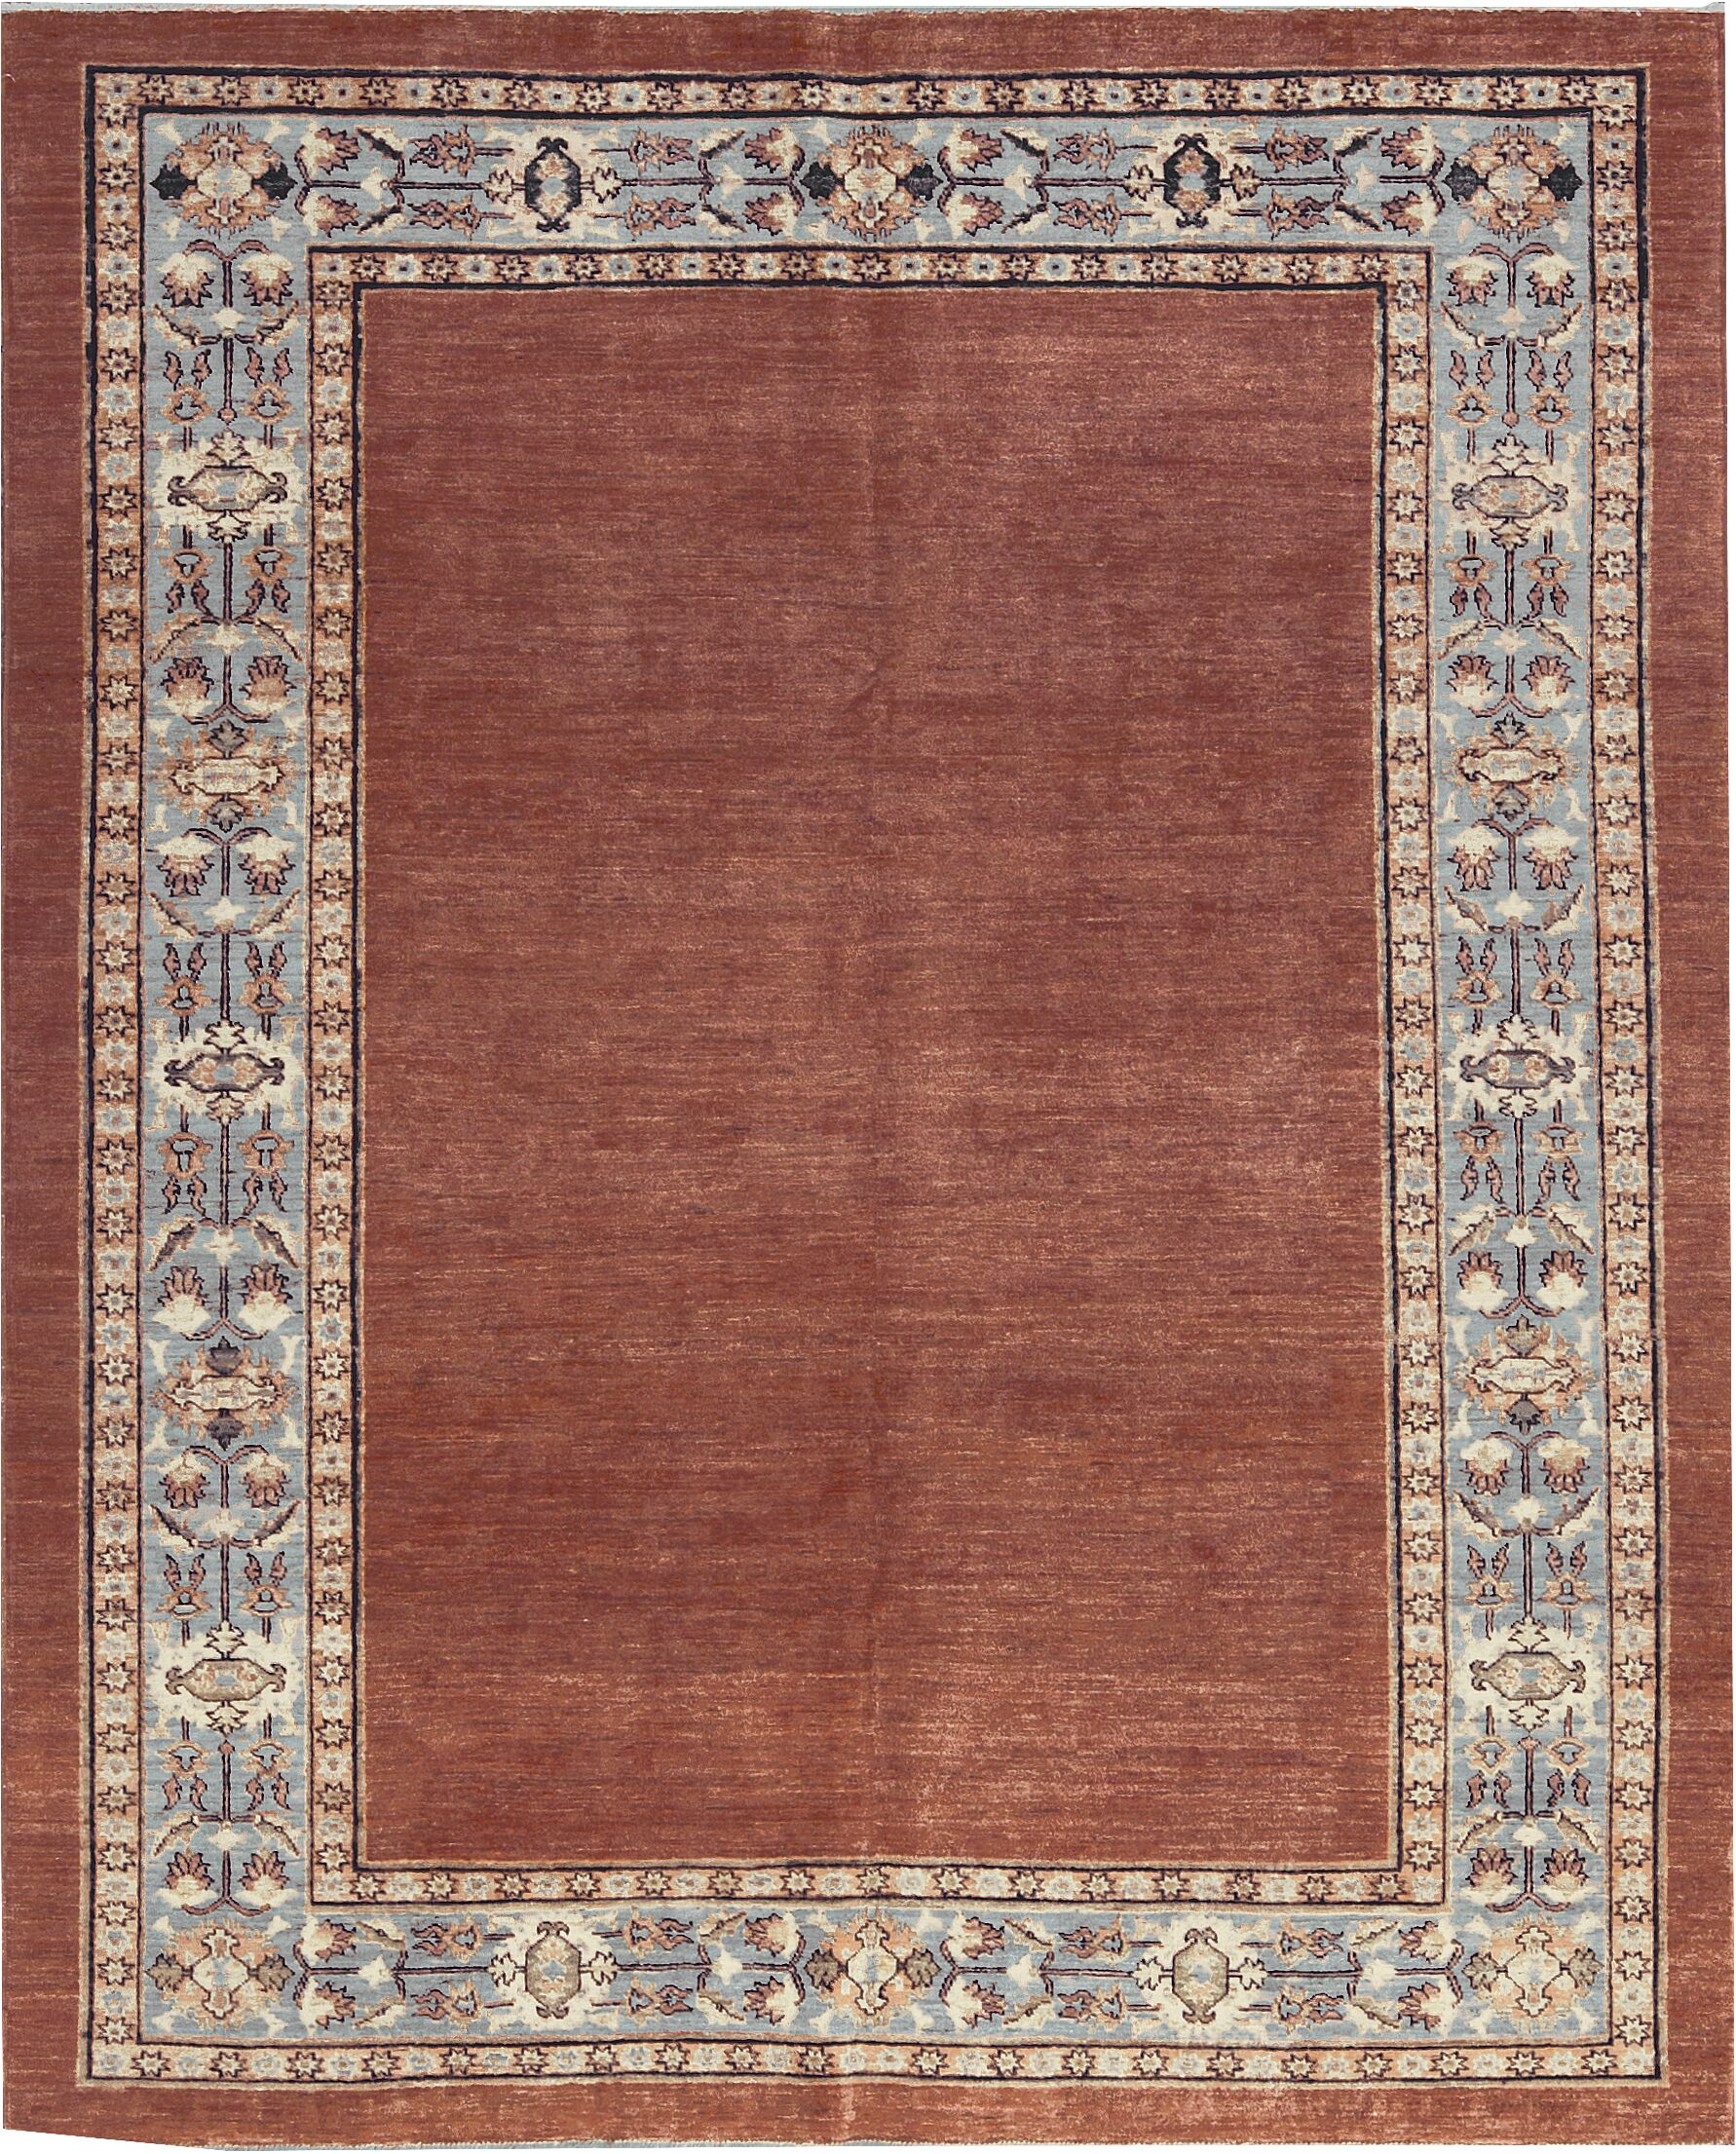 One-of-a-Kind Zarbof Hand-Knotted Wool Rust/Blue Area Rug